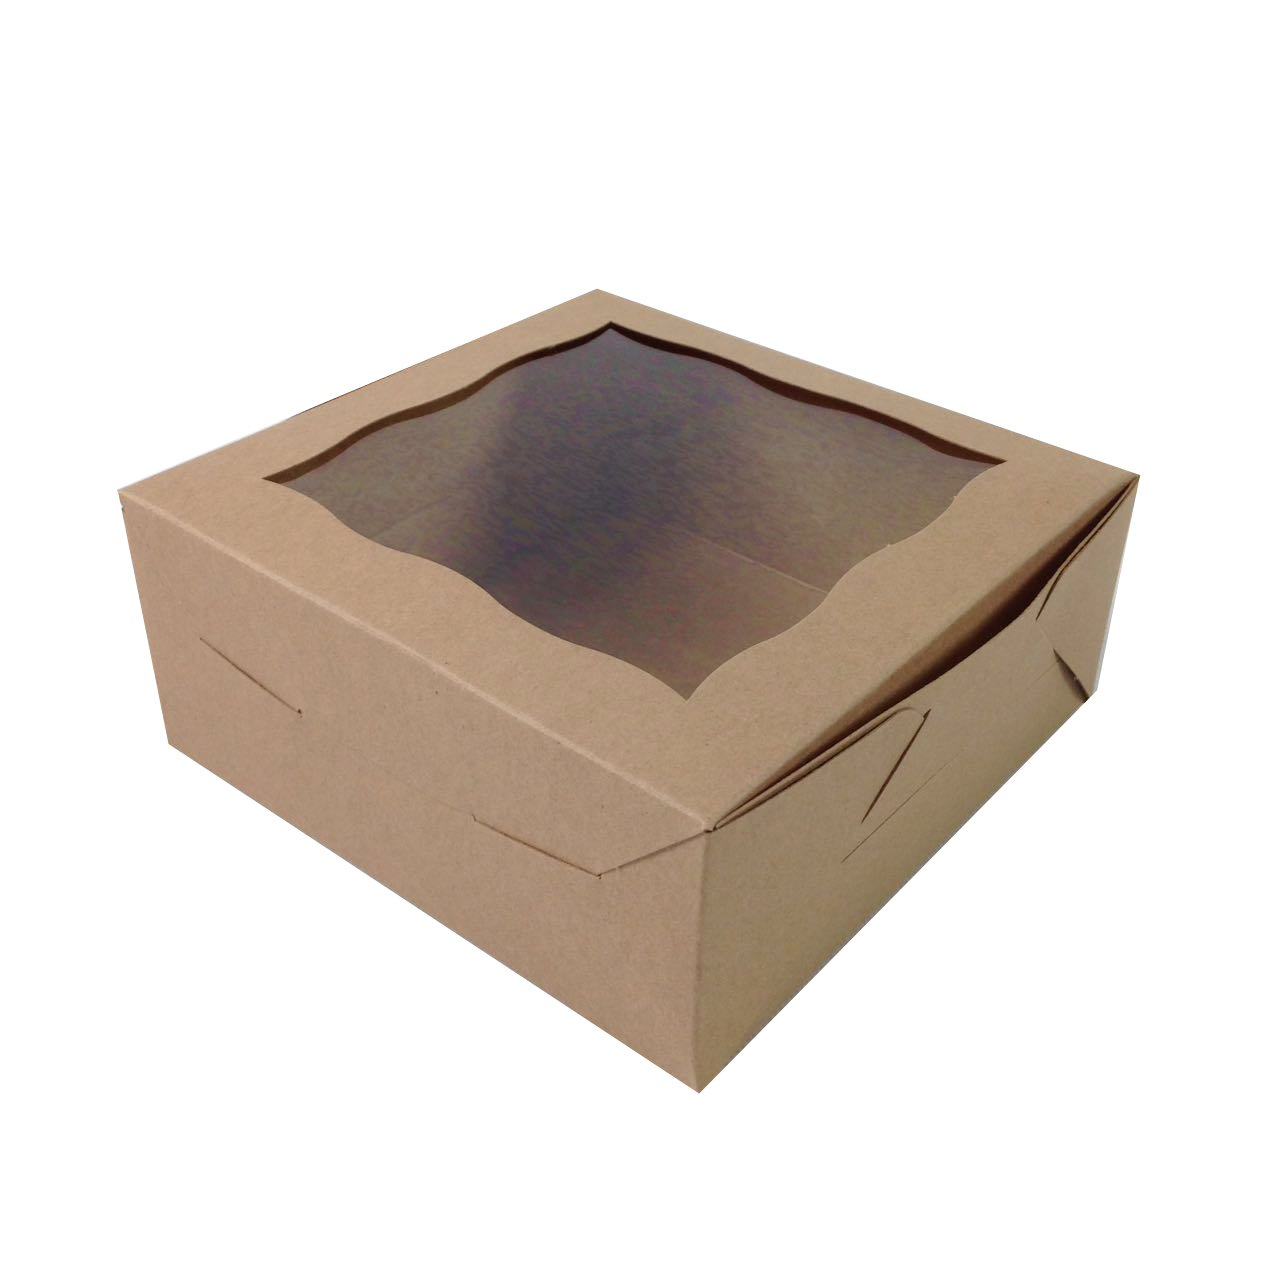 Black Cat Avenue 6'' x 6'' x 2 1/2'' Kraft Brown Cookie Boxes with Window Pastry boxes Paperboard Gift Boxes Bakery Boxes, 5 Count